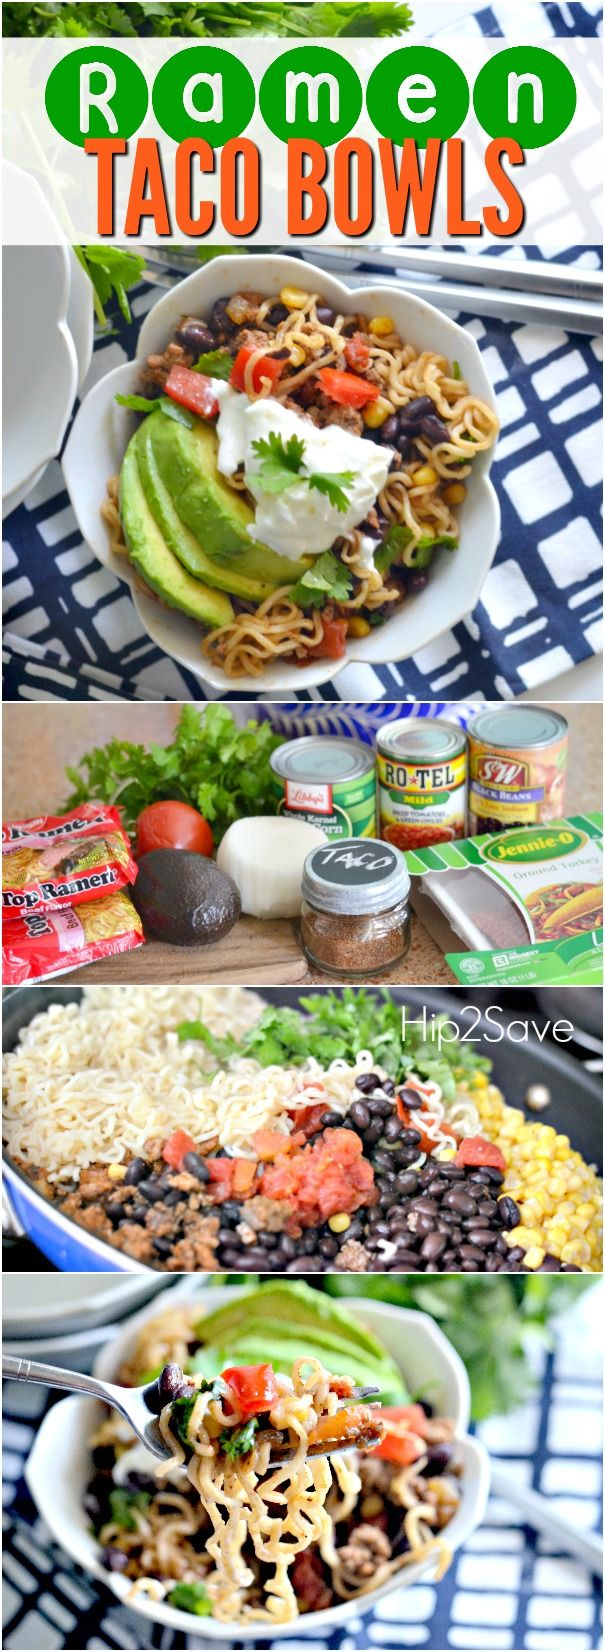 Ramen Noodle Taco Bowls! Ingredients: 1 pound Ground Beef or Ground Turkey 1/2 White Onion, chopped 3 Tablespoons Taco Seasoning (Try Our Homemade Taco Seasoning Recipe) 2 packages Top Ramen, discard seasoning 1-11oz. can whole kernel corn, drained 1-15 oz. can black beans, drained 1-10 oz. can Rotel tomatoes Handful Chopped Cilantro Garnish: avocado, tomato, salsa and sour cream